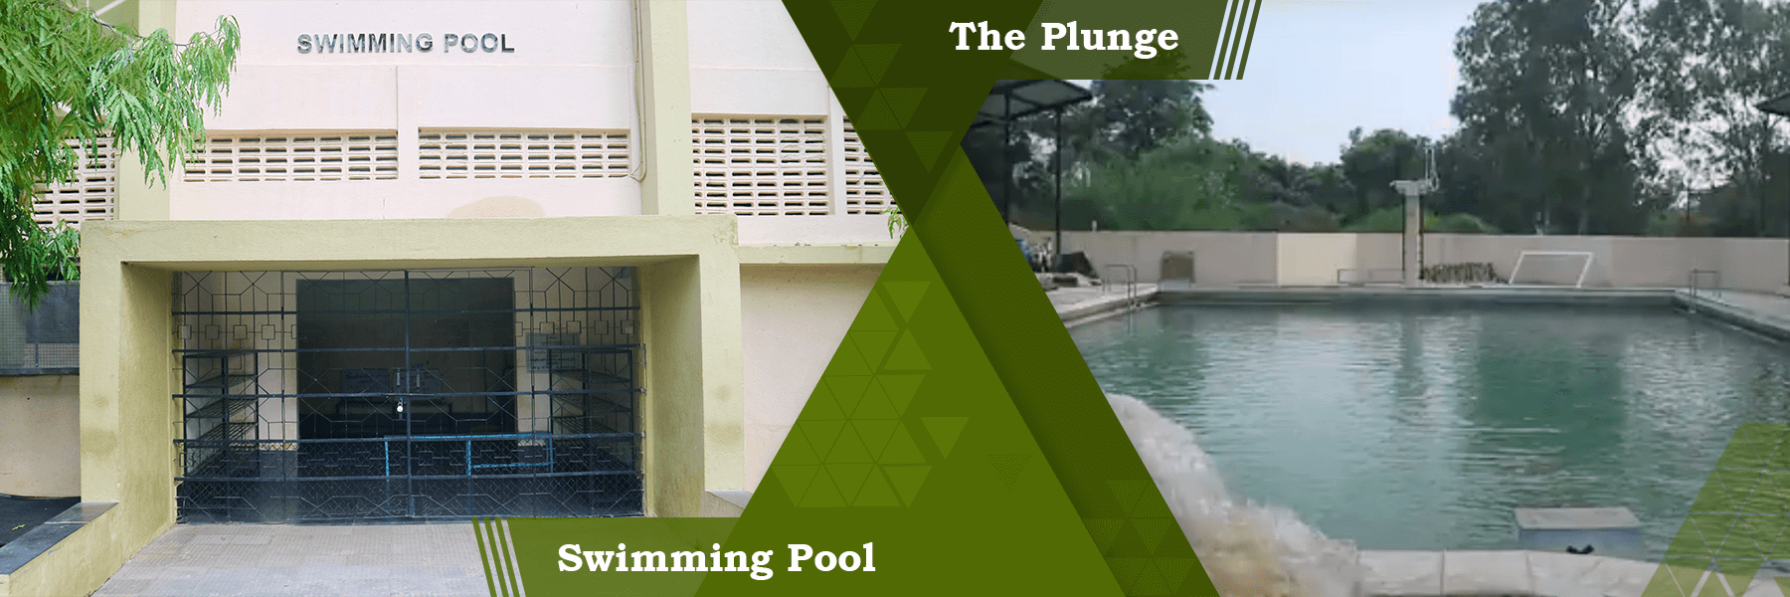 Swimming Pool In Campus_1